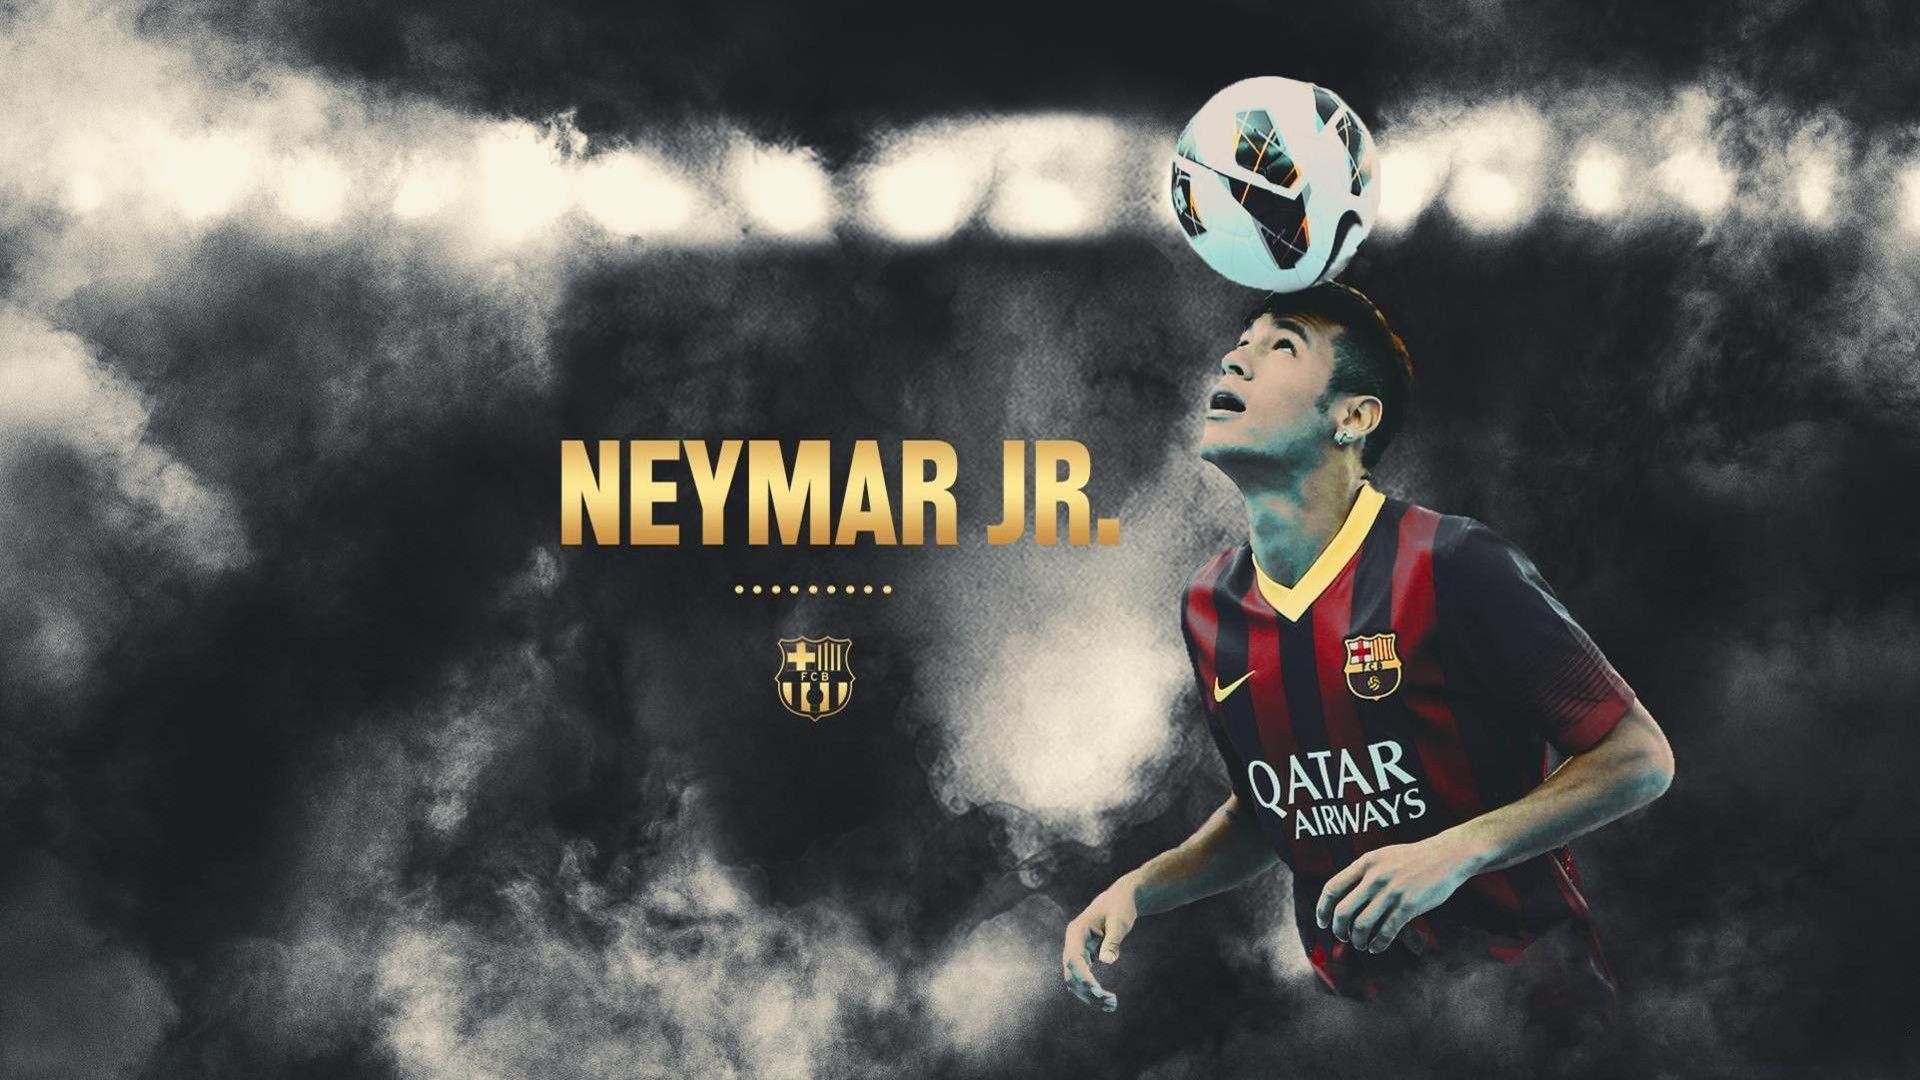 messi and neymar wallpaper 2015